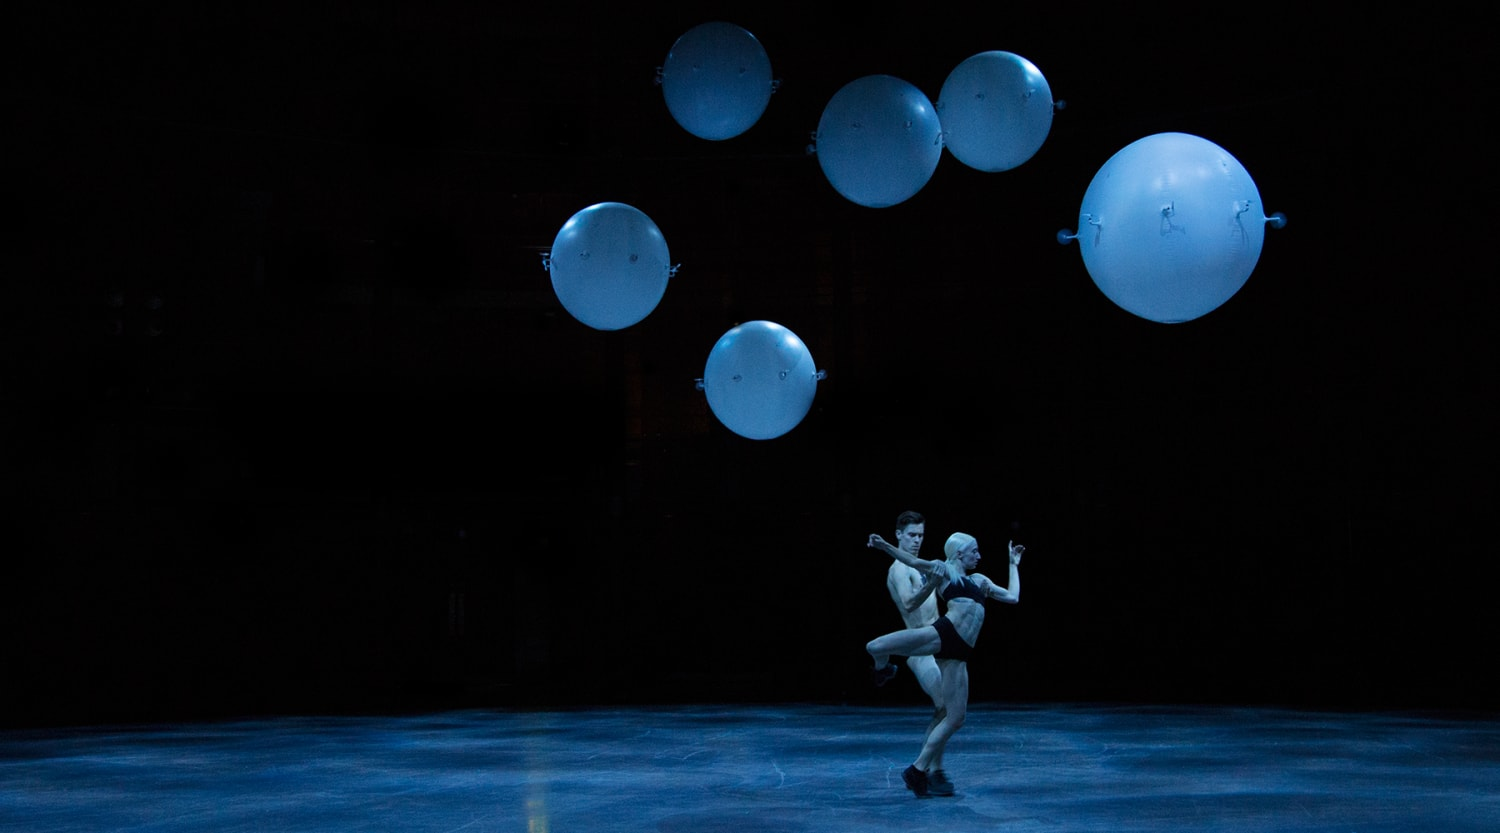 Human dance performance at the Roundhouse by Wayne Mc Gregor Credit to Ravi Deepres and Alicia Clarke